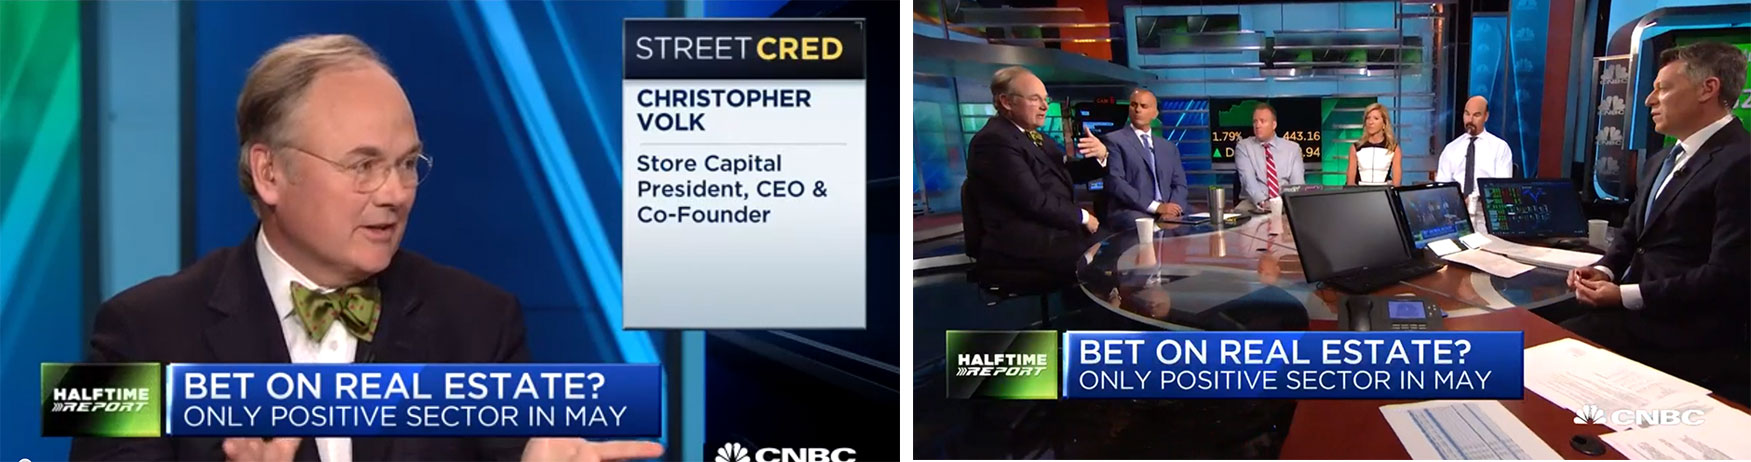 STORE Capital CEO Chris Volk Interviewed on CNBC